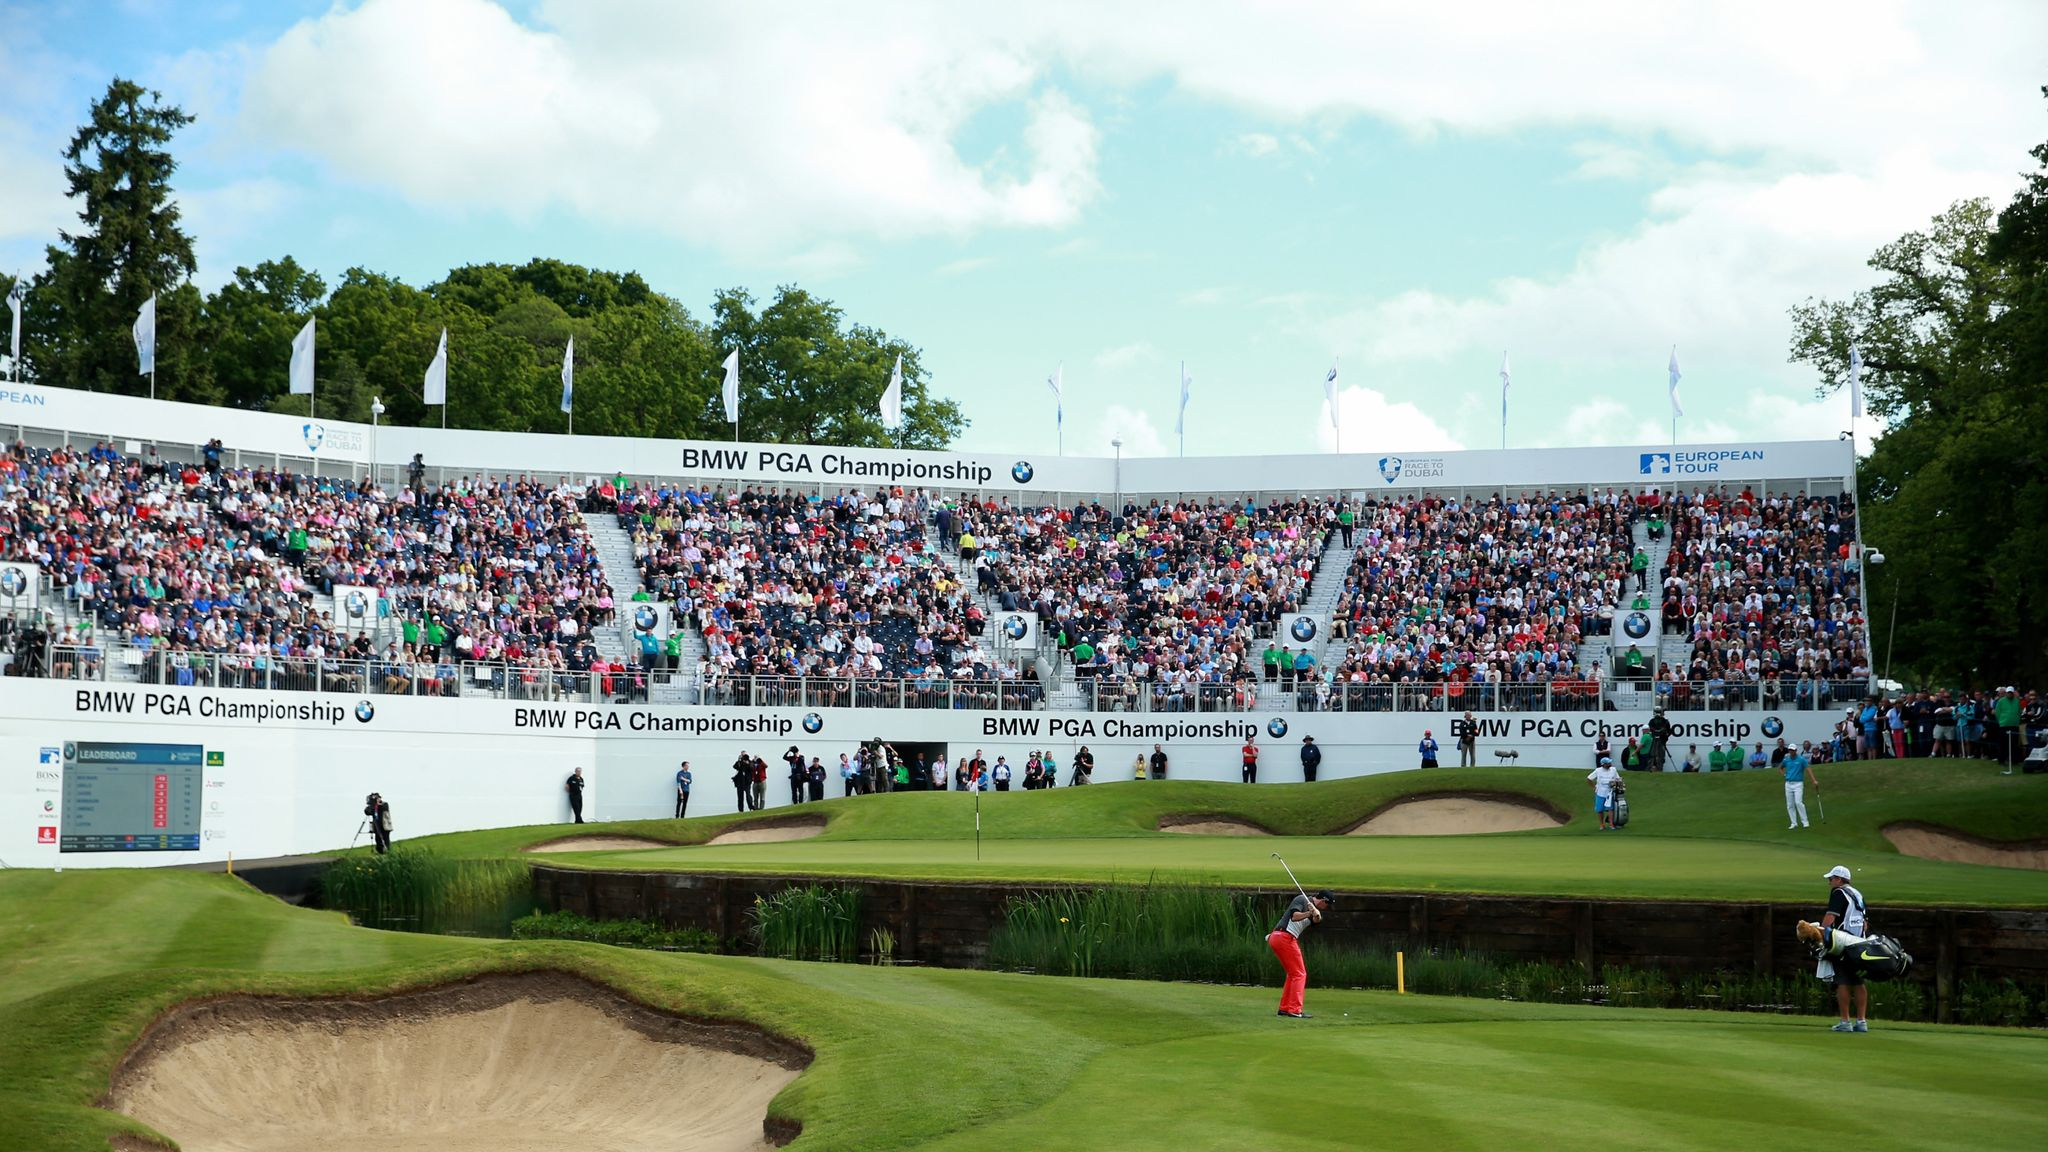 Bmw Pga Championship Ways To Watch From Wentworth On Sky